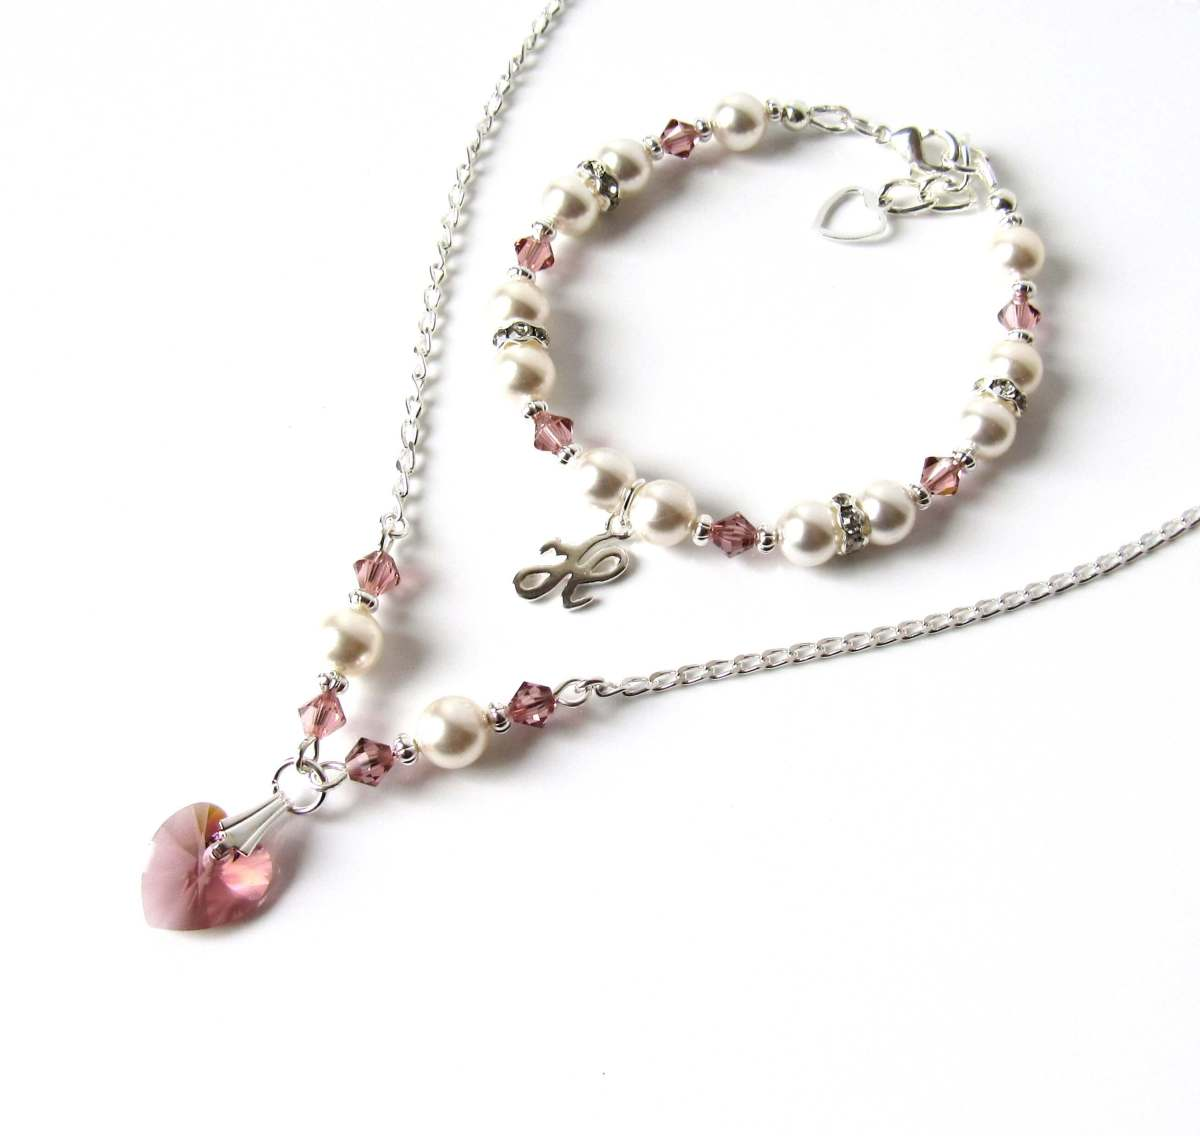 Girls Crystal  U0026 Pearl Necklace  U0026 Bracelet Set  U2013 Blush Pink